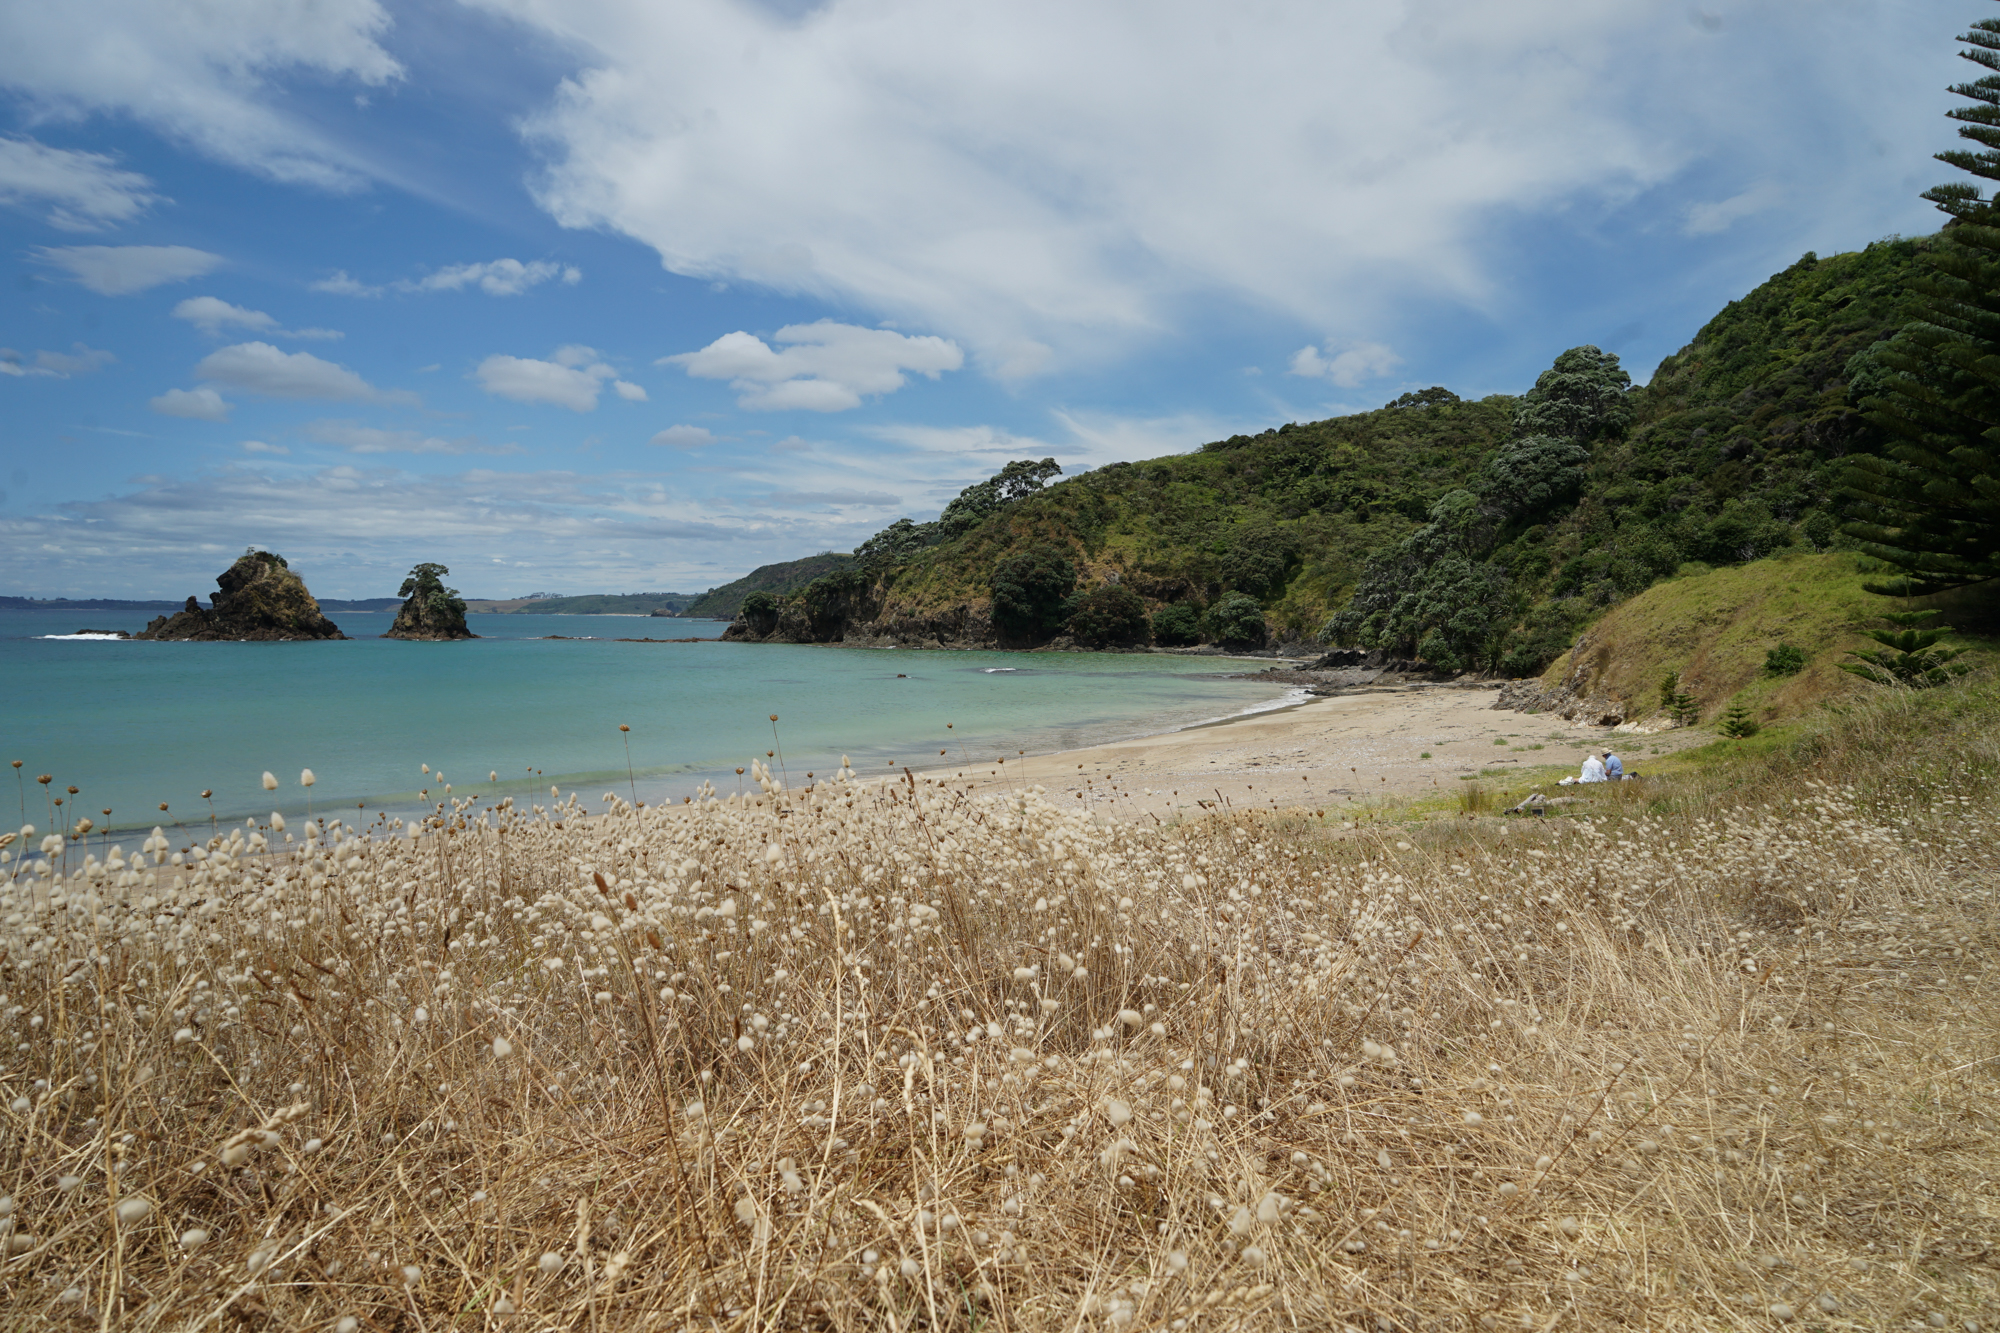 And three private beaches, including pink beach below, named for the tiny pink shells that tint the sand. The weekly beach bbq held there is not to be missed!